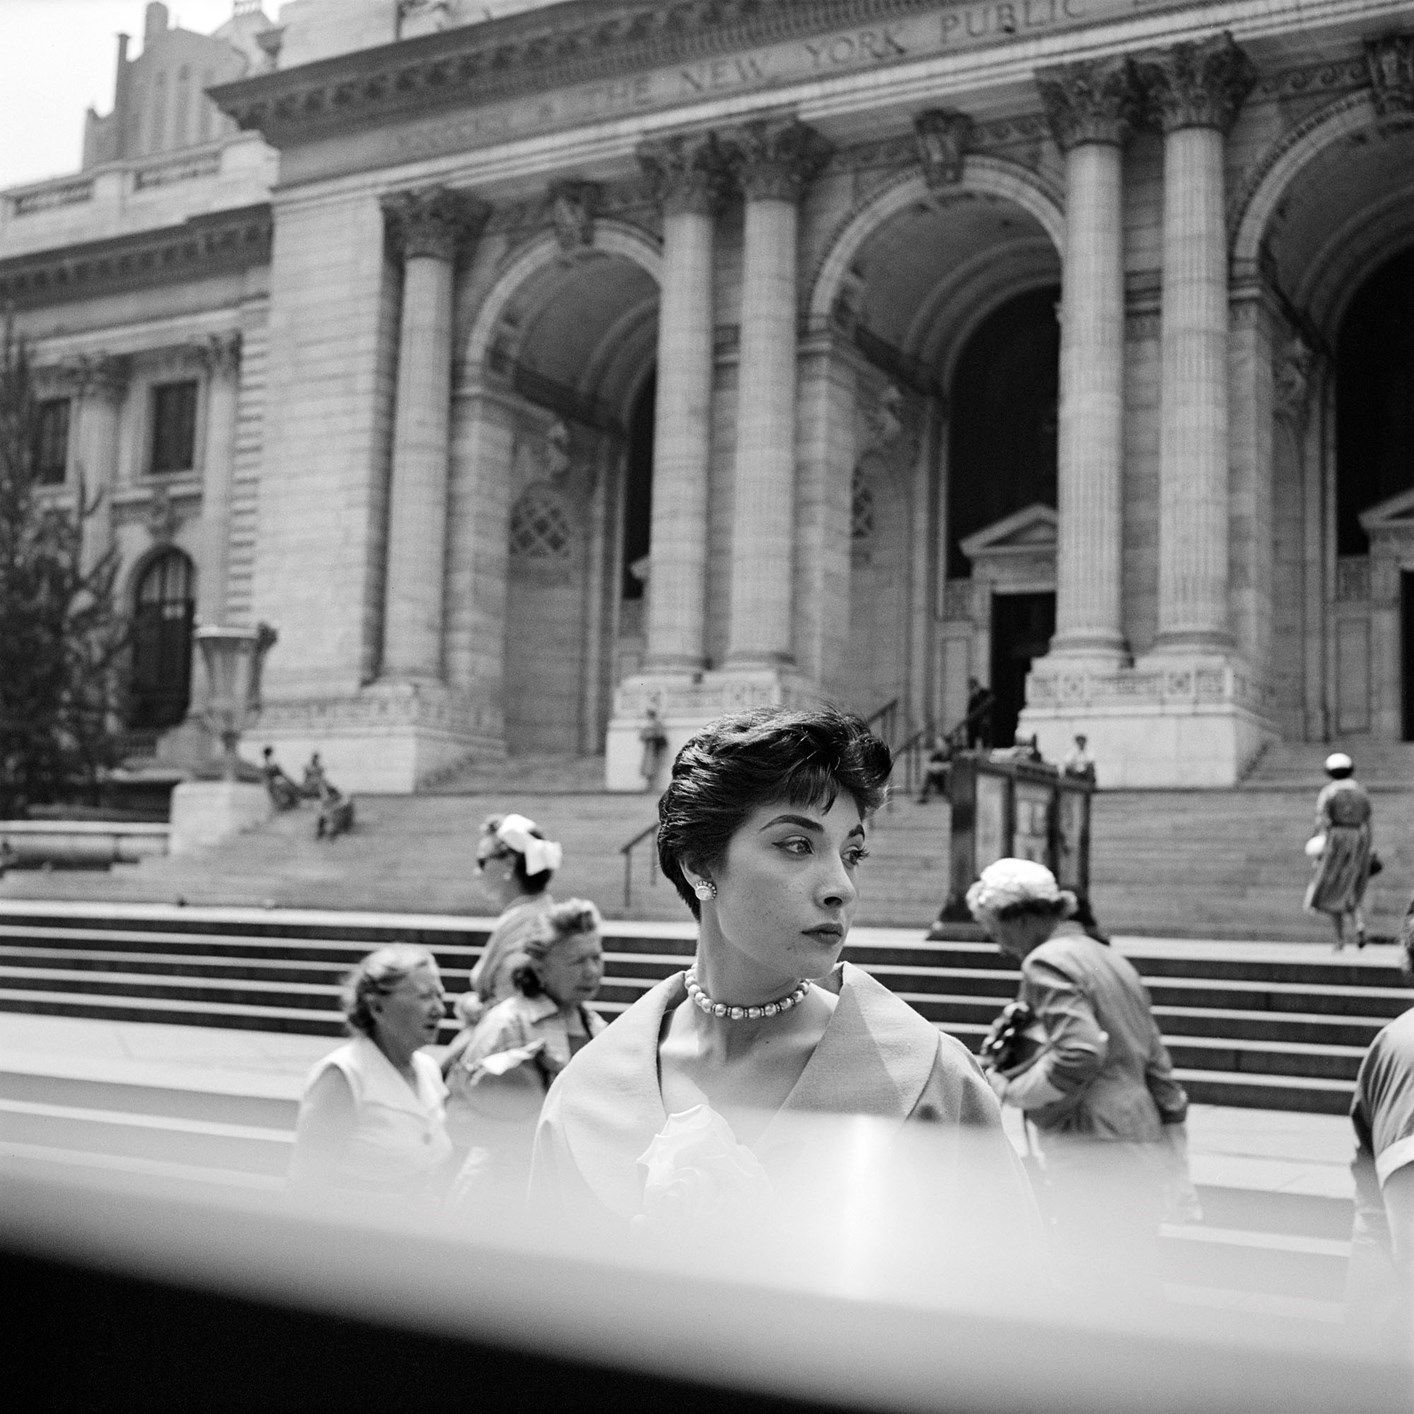 Vivian Maier, New York Public Library, New York, c. 1952 ©Estate of Vivian Maier, Courtesy of Maloof Collection and Howard Greenberg Gallery, NY